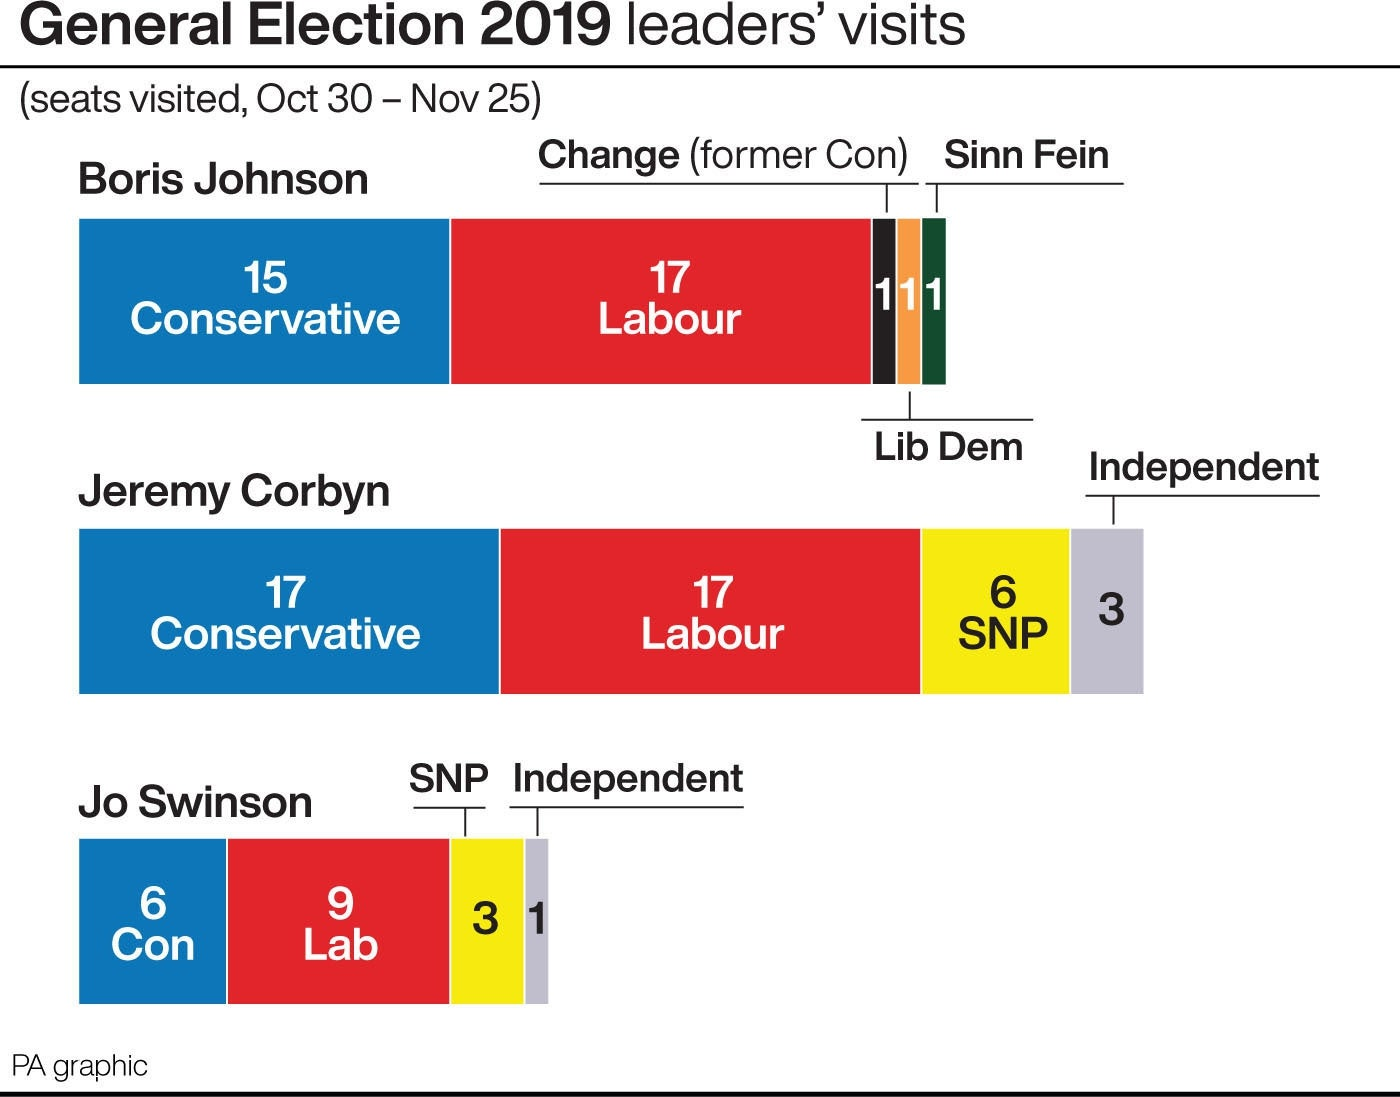 General election 2019 leaders' visits